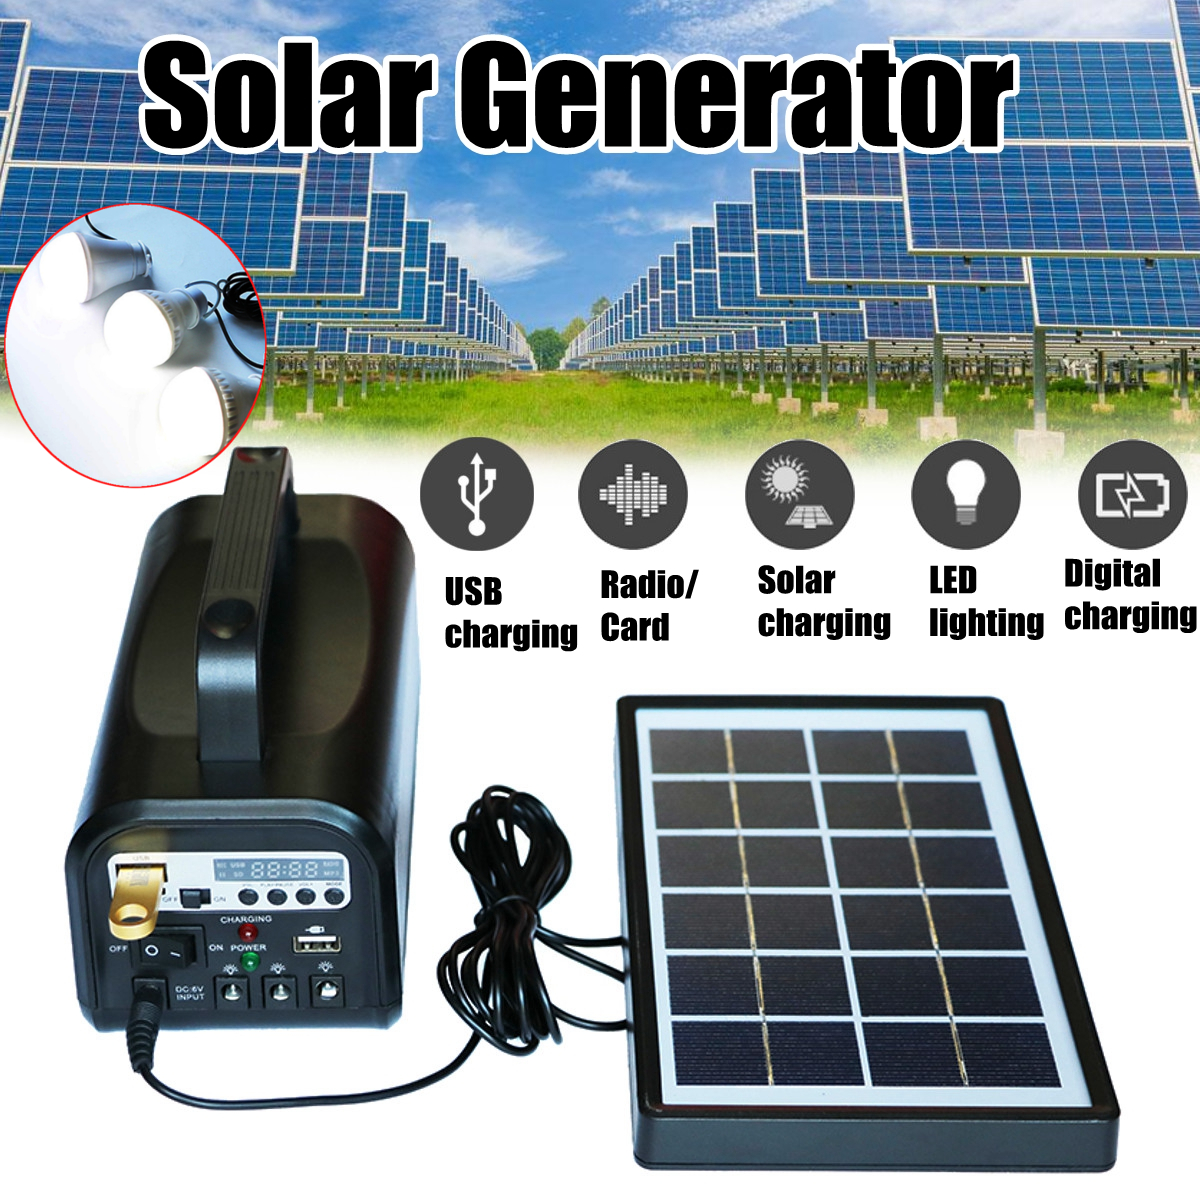 Buy Bluetooth Solar Panel And Get Free Shipping On Pwm Charge Controllersolar Generator 220v Portablesolar